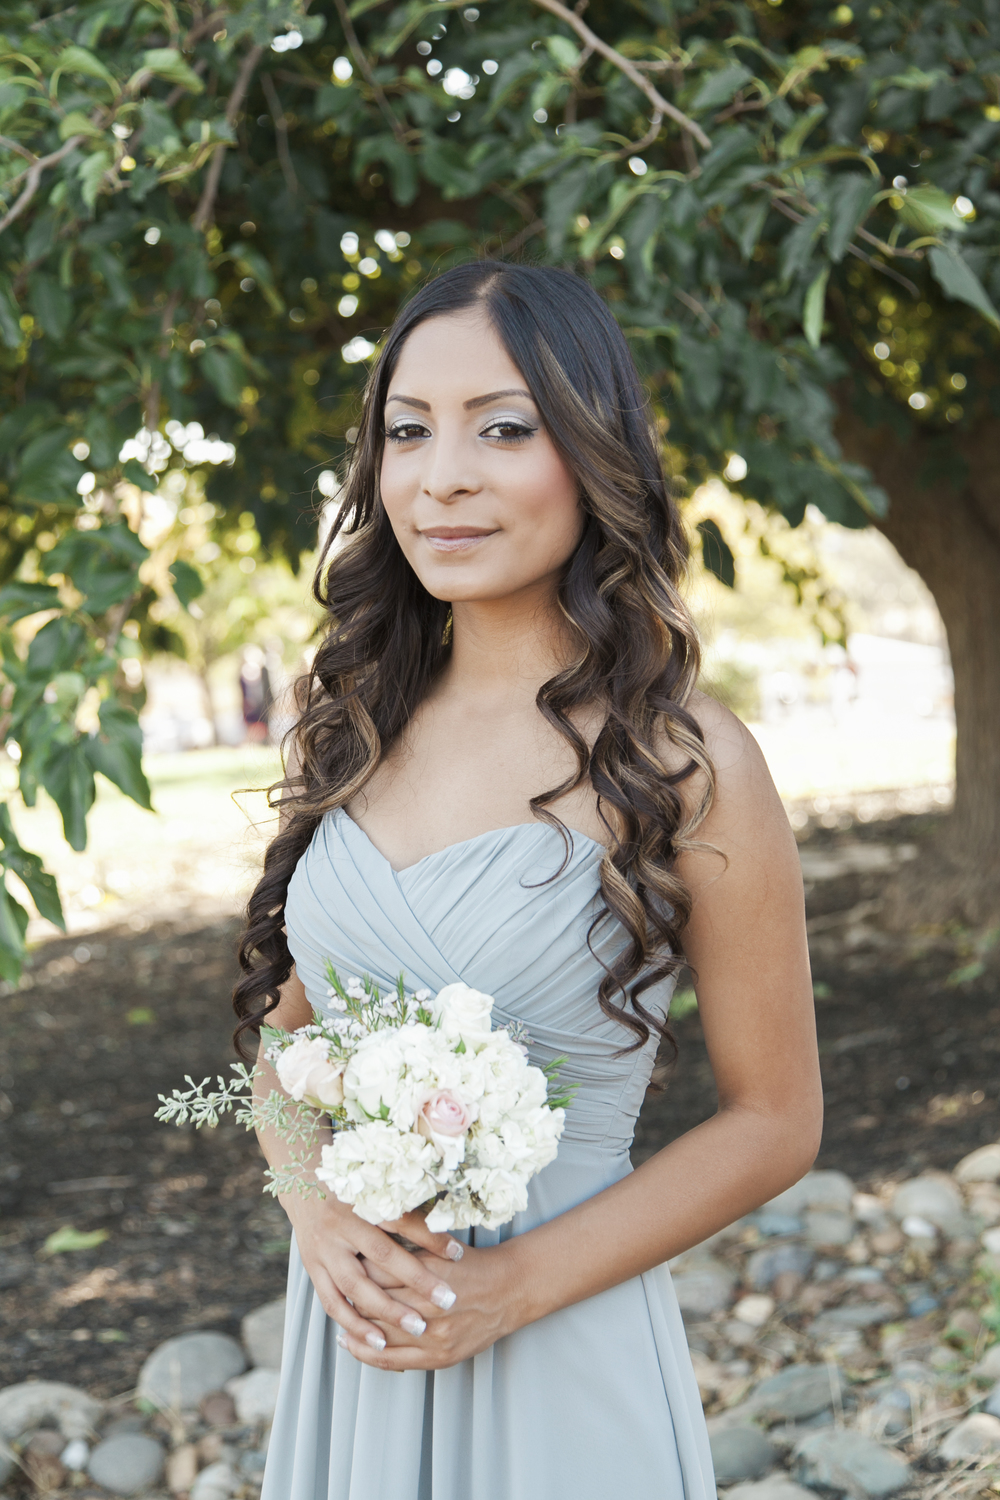 Vacaville Wedding Photographer Fairfield Vallejo-19.jpg